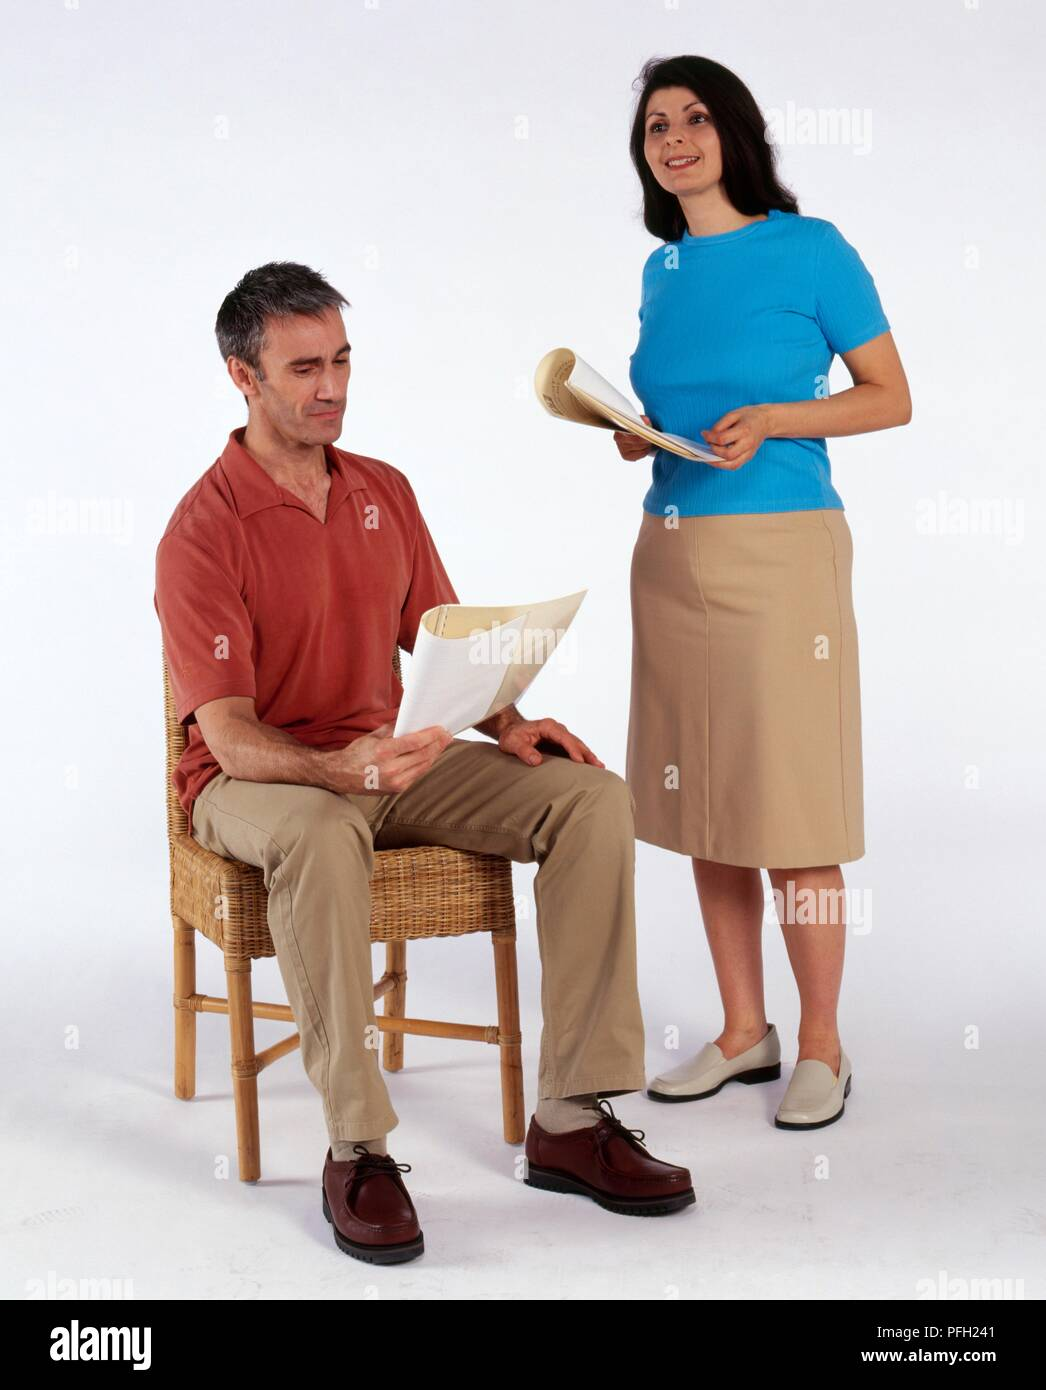 Man and woman rehearsing lines from scripts - Stock Image